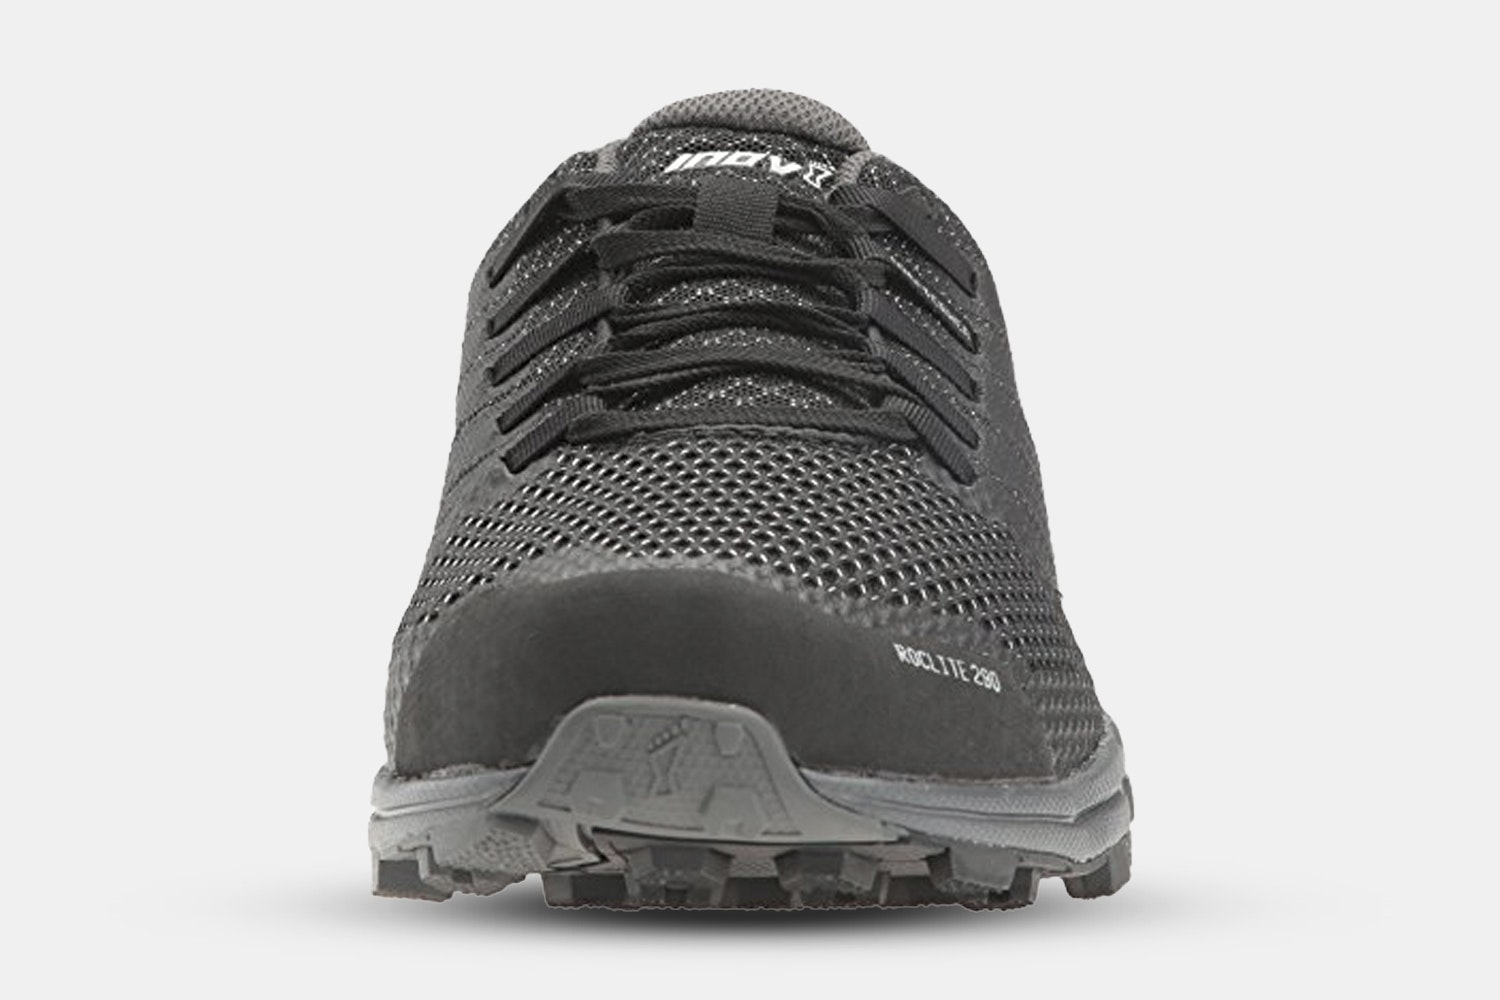 Inov-8 Roclite 290 Running Shoe Closeout